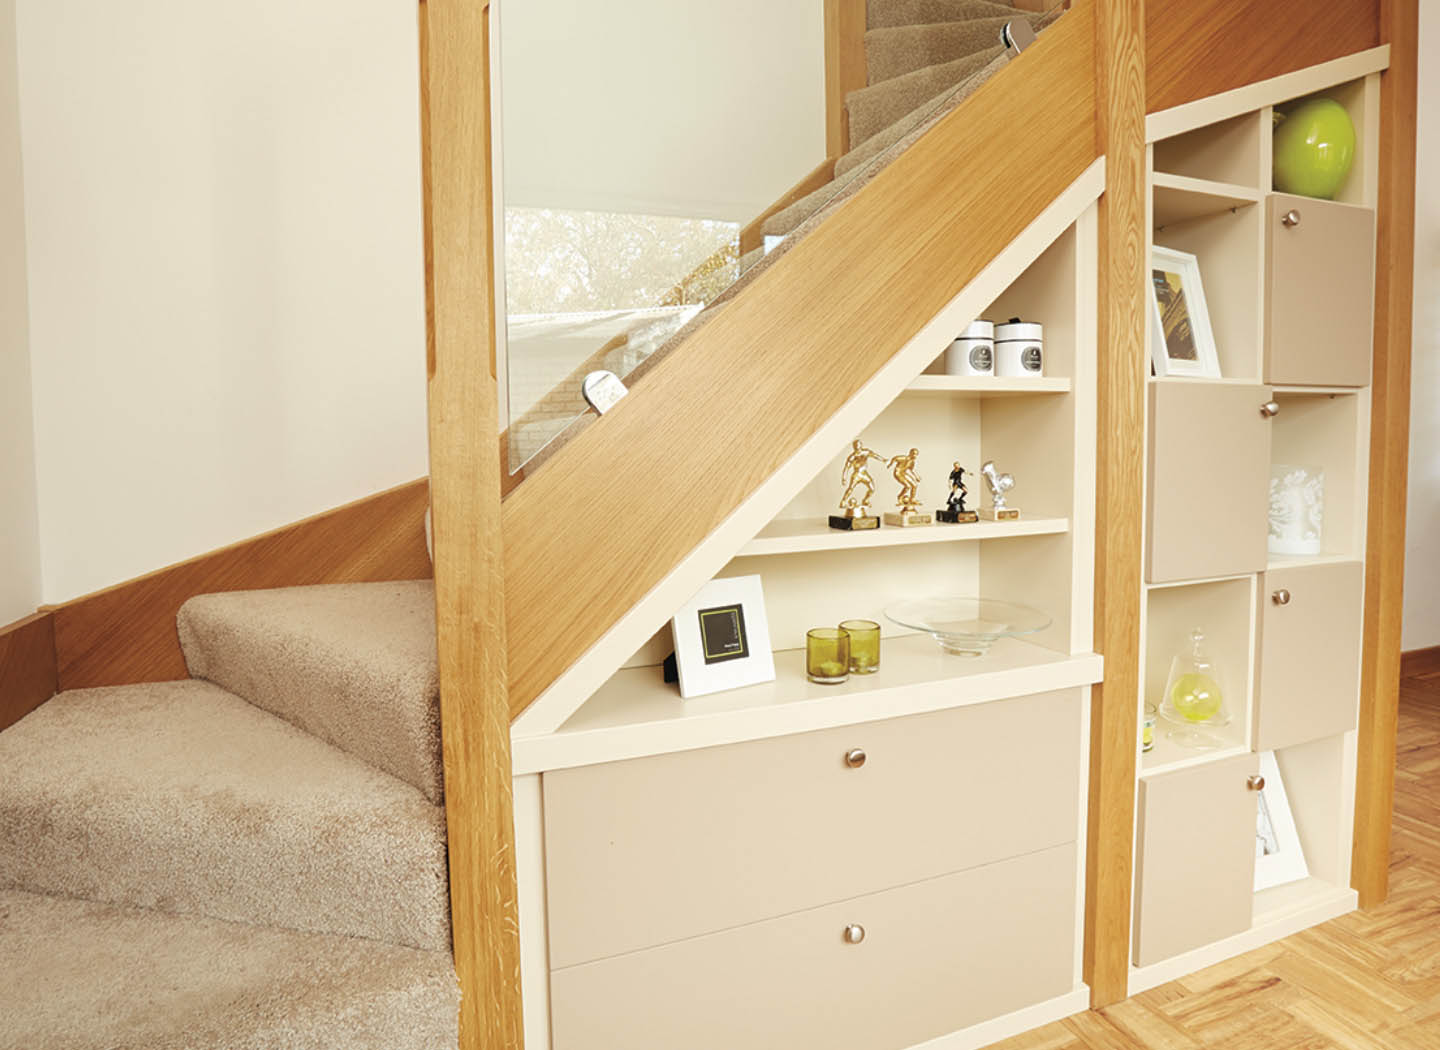 Under stair bespoke dresser in Gloss White and Oyster